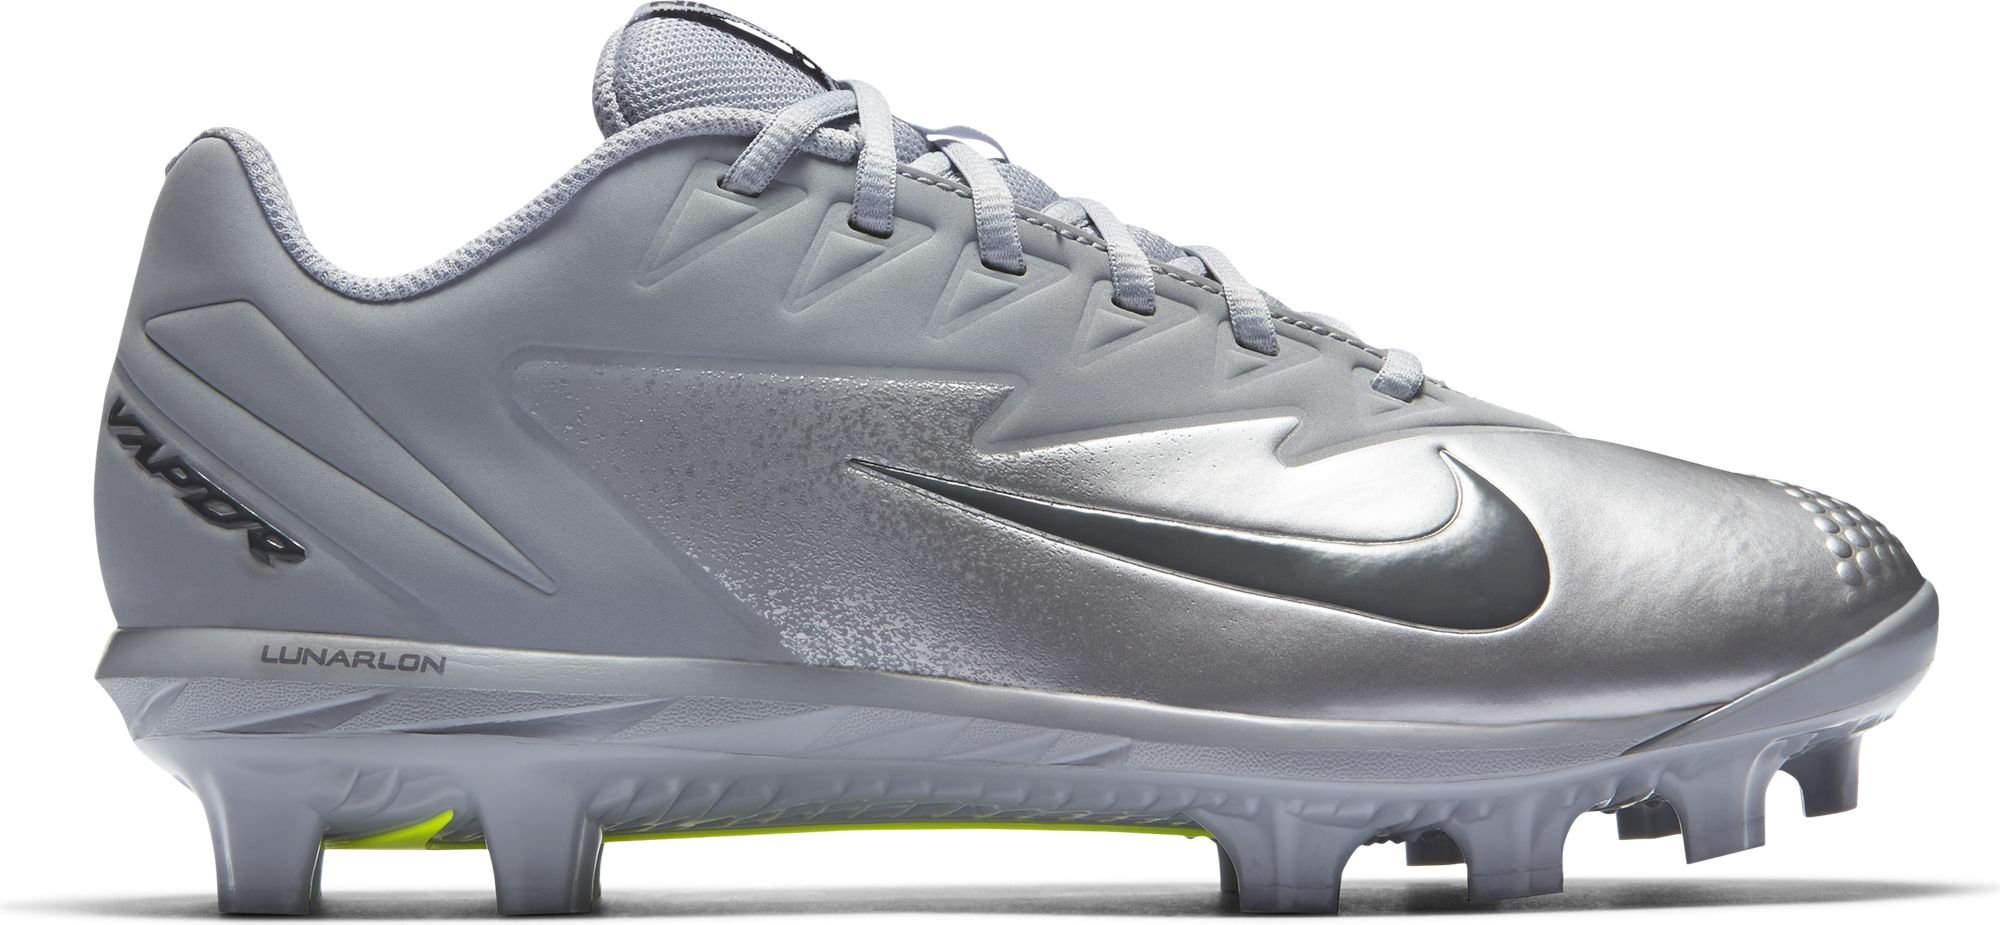 8f12cea45ca Galleon - NIKE Men s Vapor Ultrafly Pro MCS Baseball Cleat Wolf Grey Dark  Grey Metallic Silver Size 8 M US